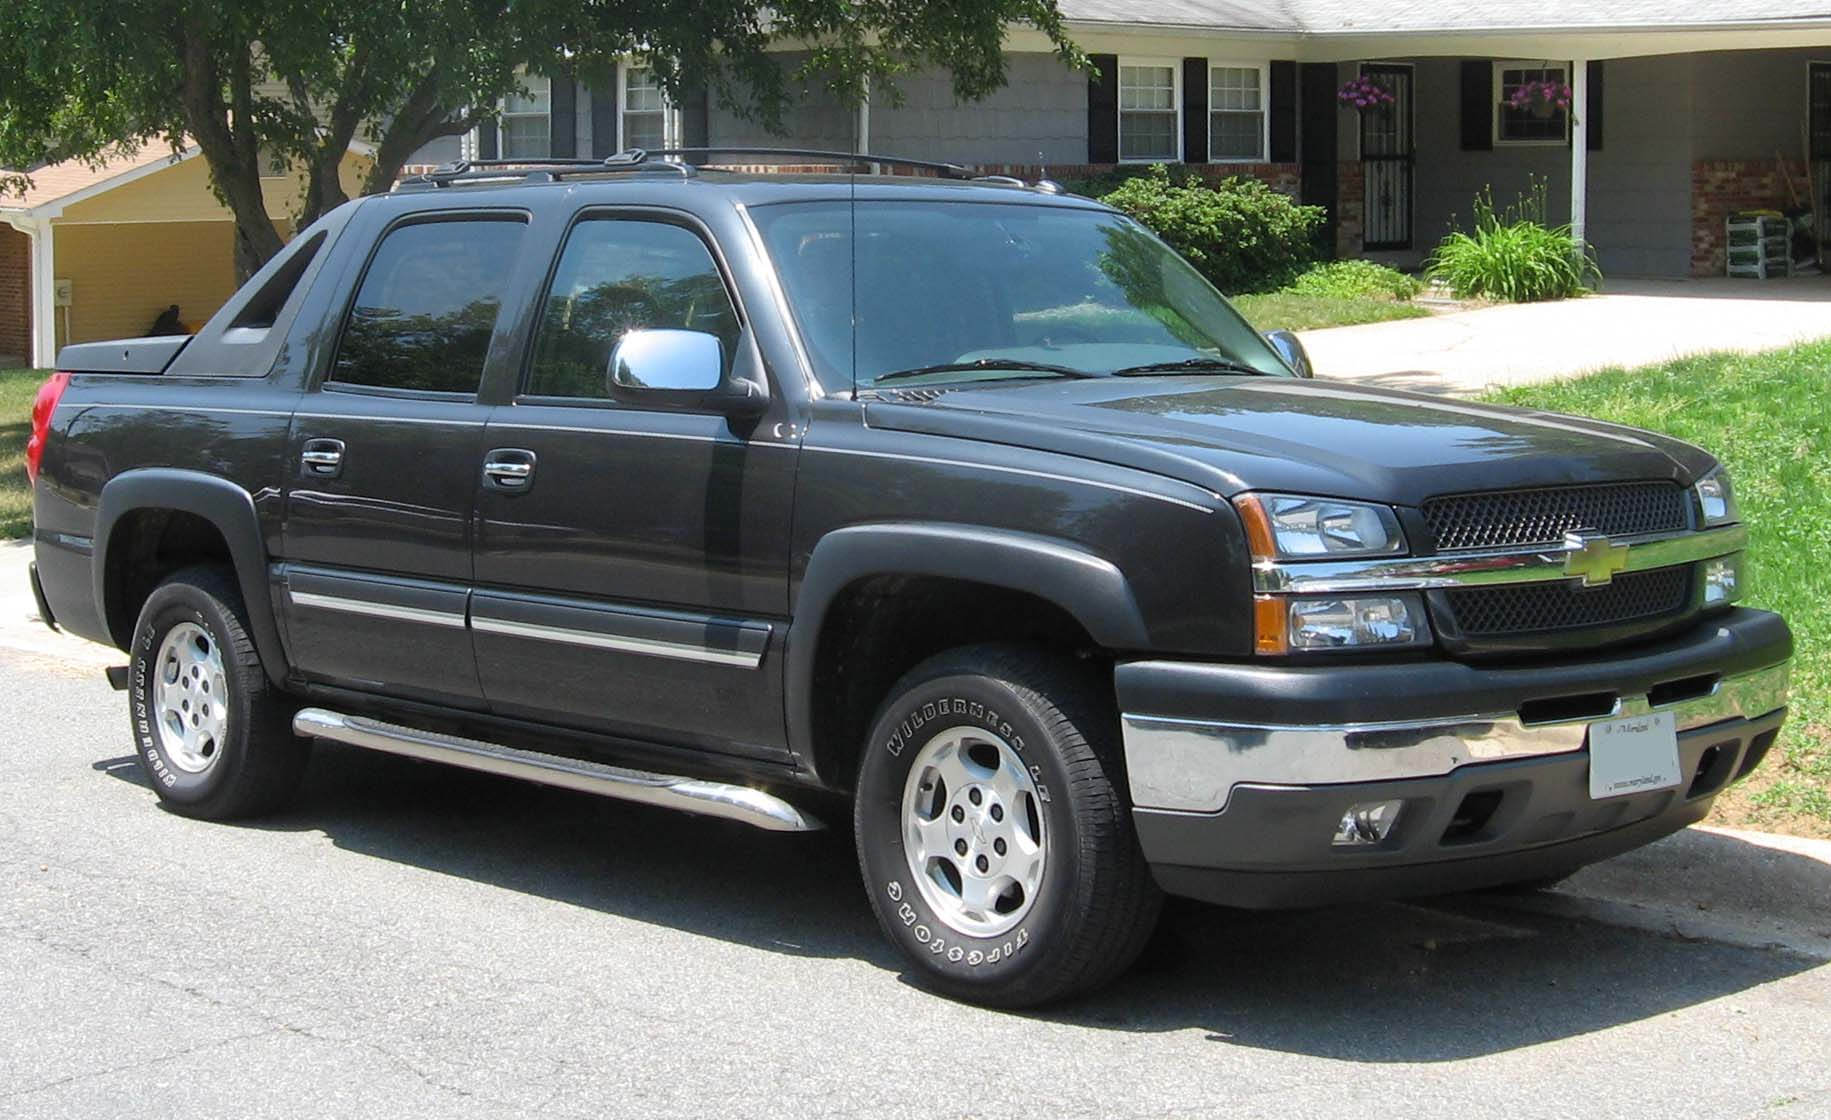 file200306-chevrolet-avalanche-wbhjpg_ed7b4 Great Description About Chevy Avalanche 2013 with Amazing Pictures Cars Review